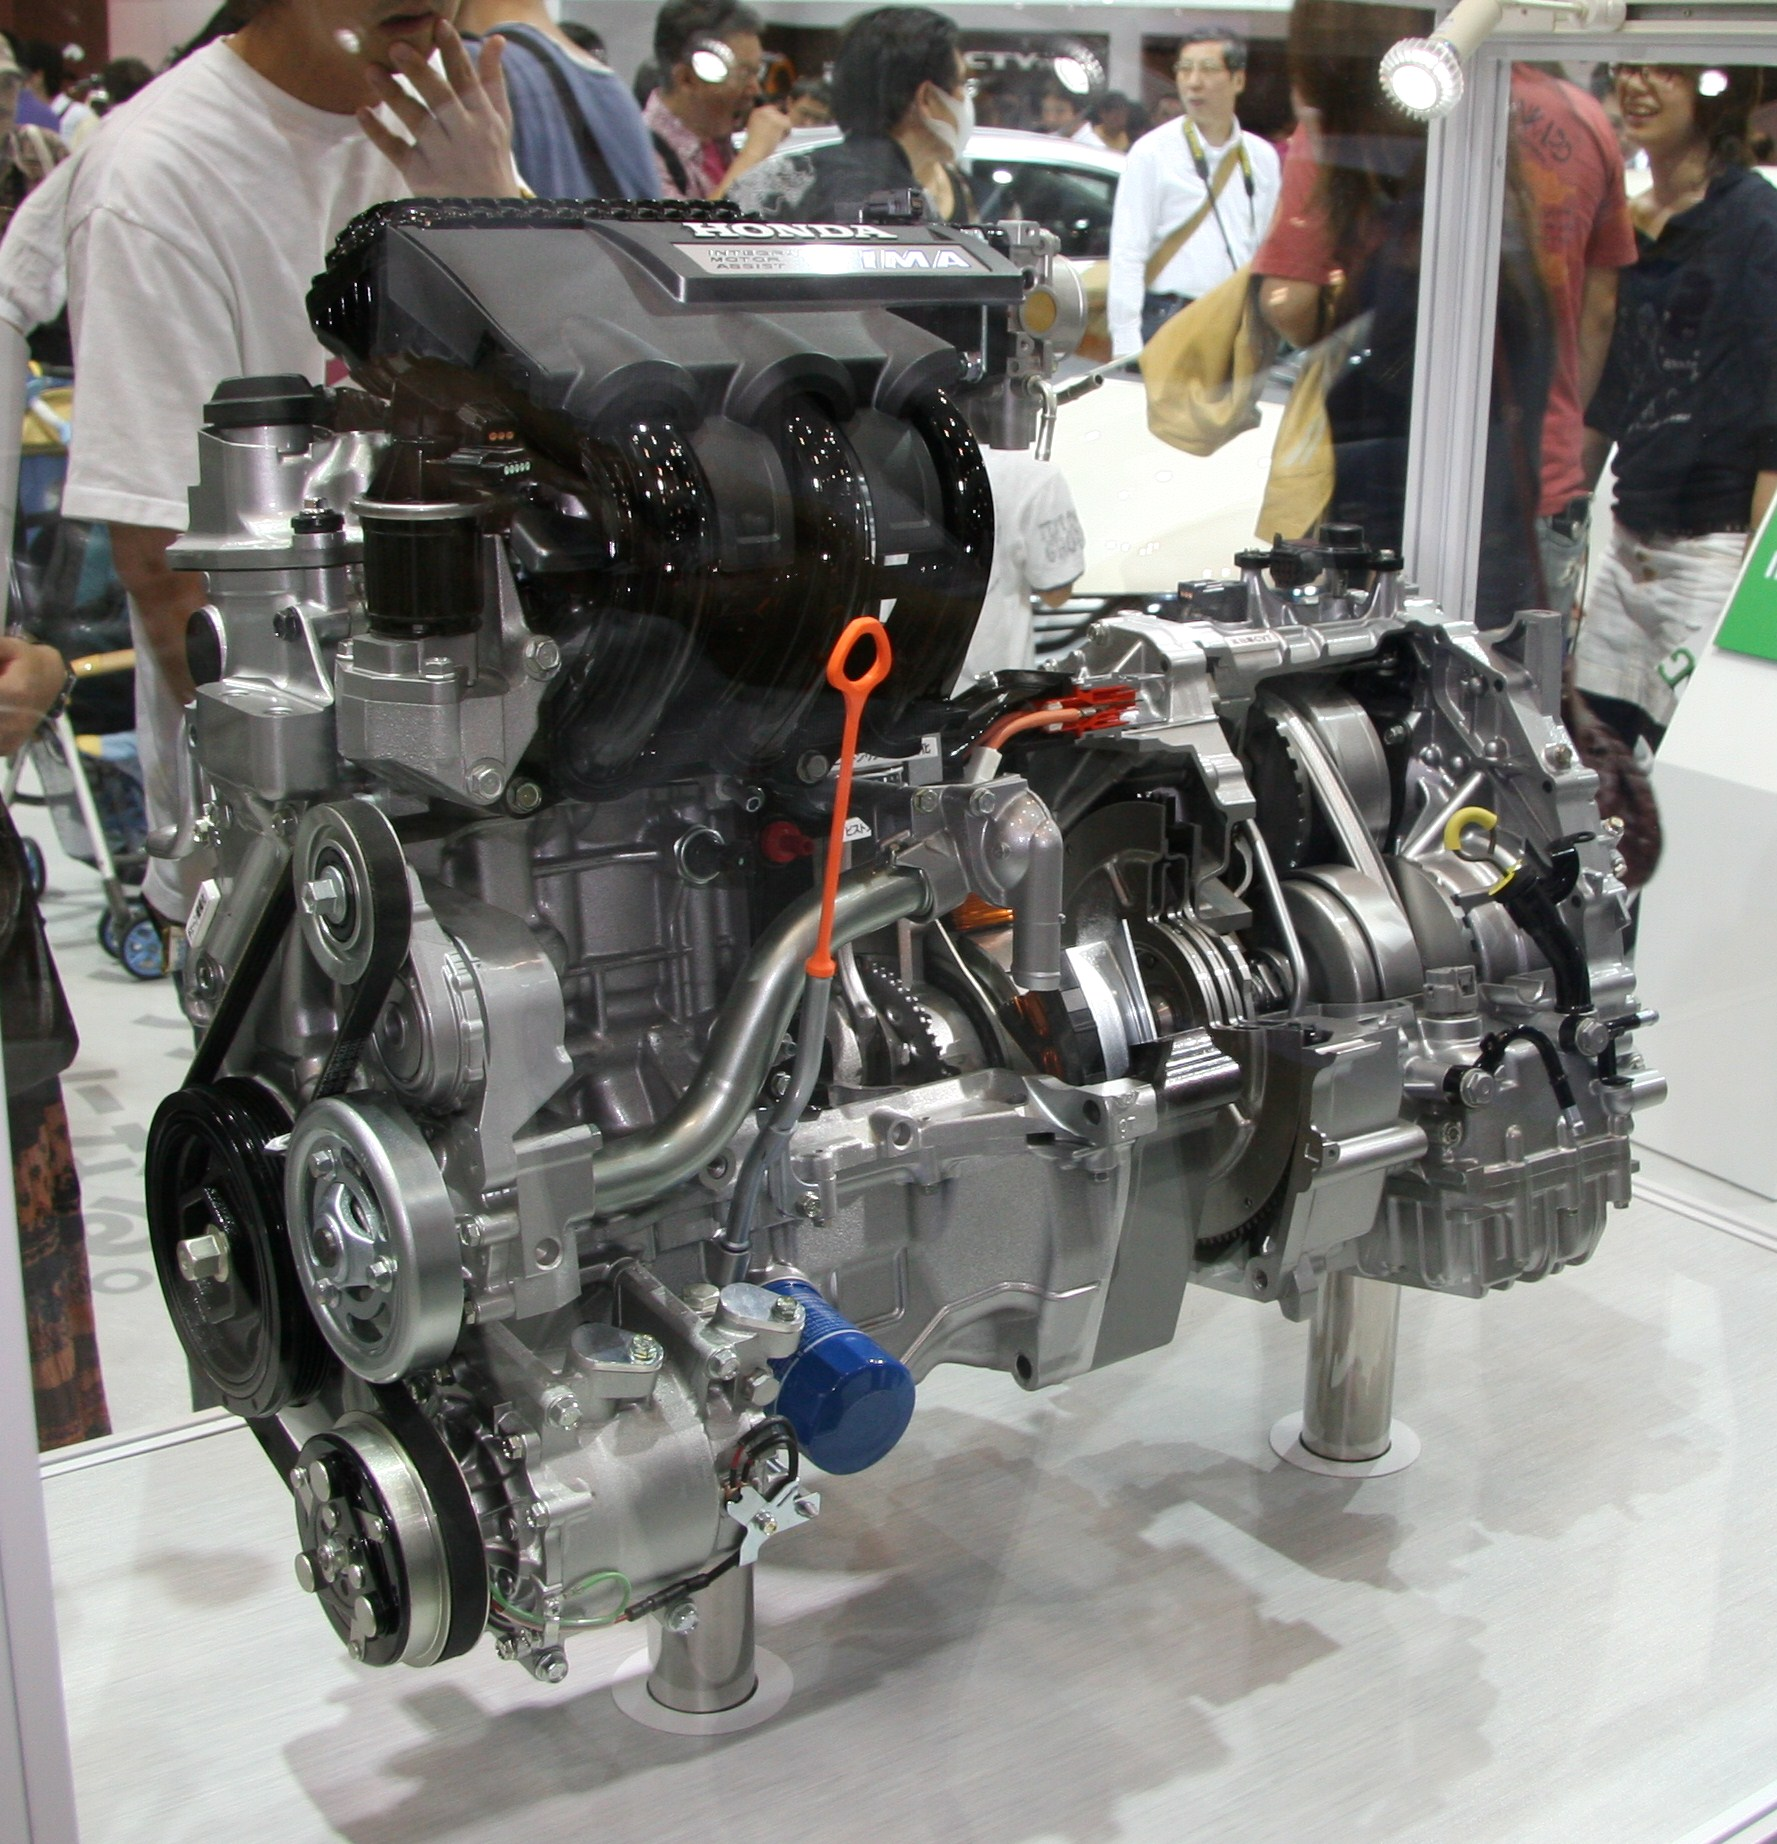 Second Generation Honda Insight IMA Powertrain Engine Motor And Transmission